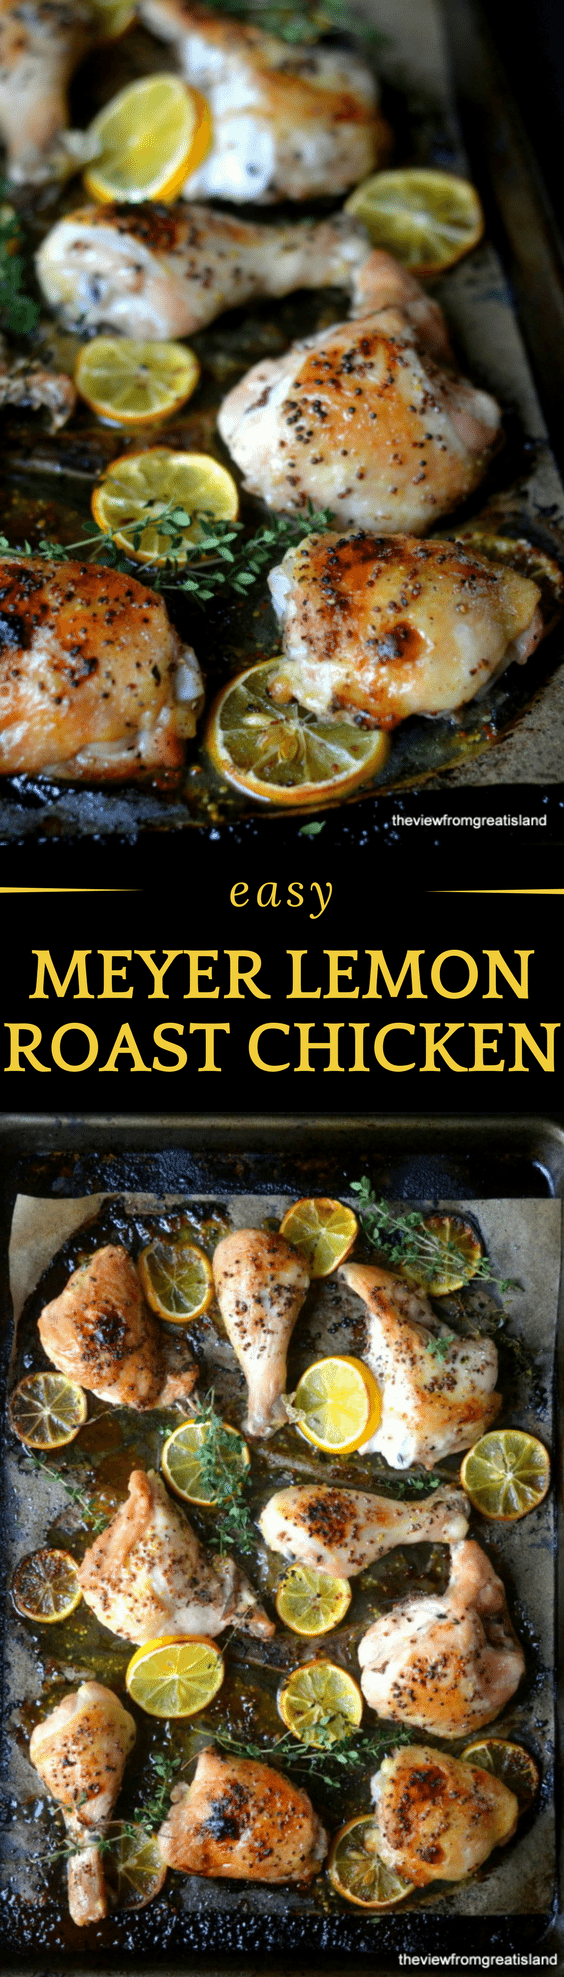 Meyer Lemon Roast Chicken is a delicious way to perk up your weekly meal plan ~ the flavors are bright and sunny, and the whole dish looks as beautiful as it tastes! #chicken #dinner #lemonchicken #meyerlemon #limoncello #sheetpanchicken #onepanmeal #sheetpandinner #baked chicken #easychicken